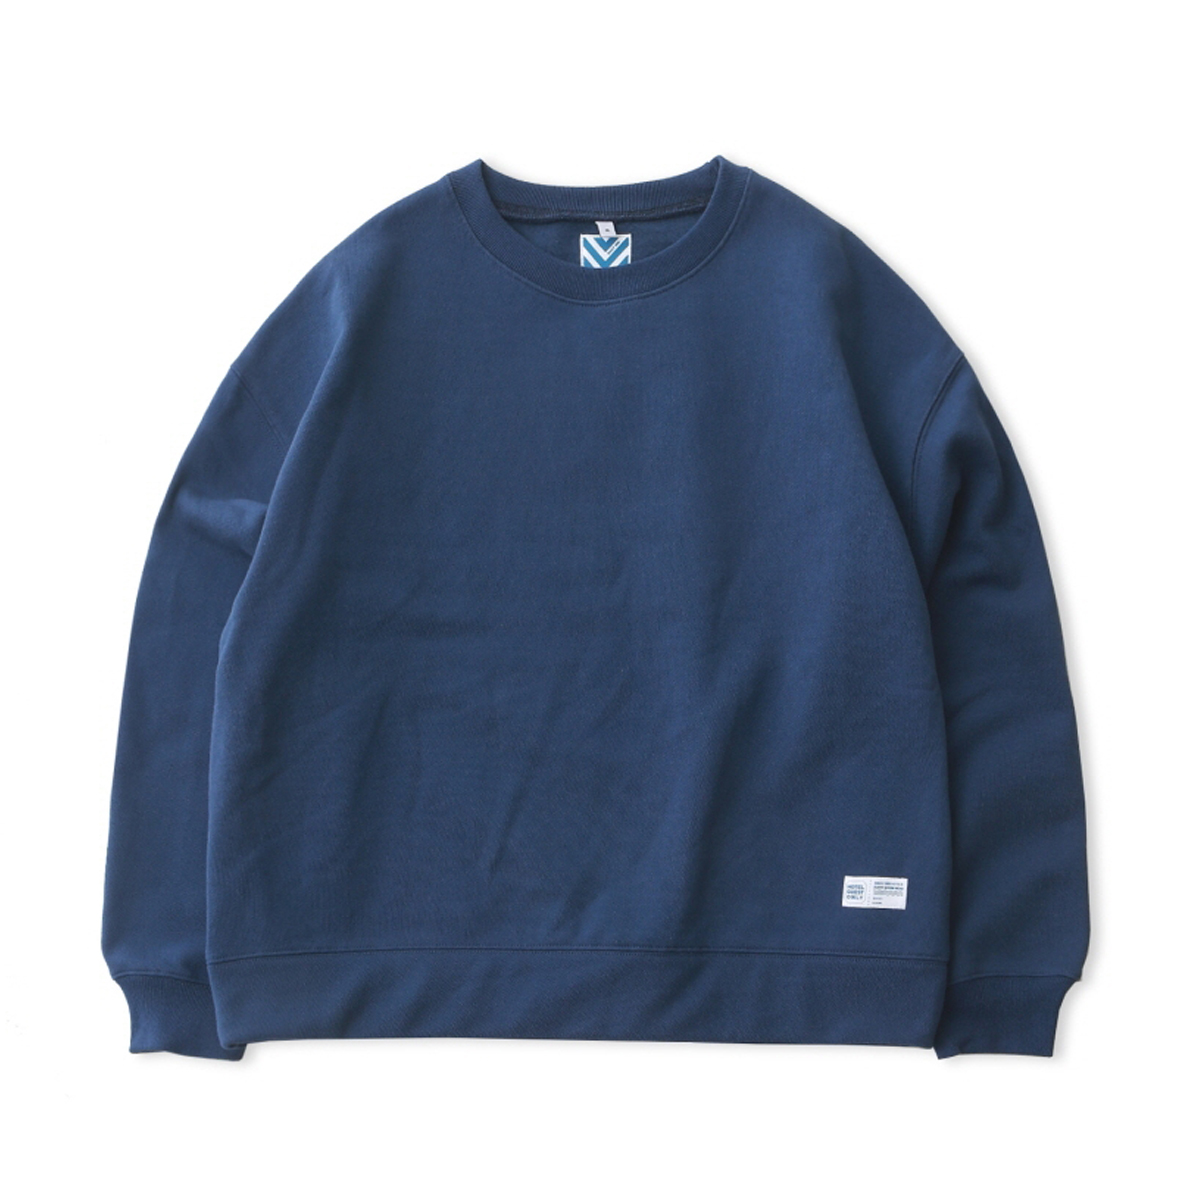 [DAILY INN] HOTEL SIGNATURE 970G SUPER HEAVY WEIGHT OVERSIZED SWEAT 'POOL'